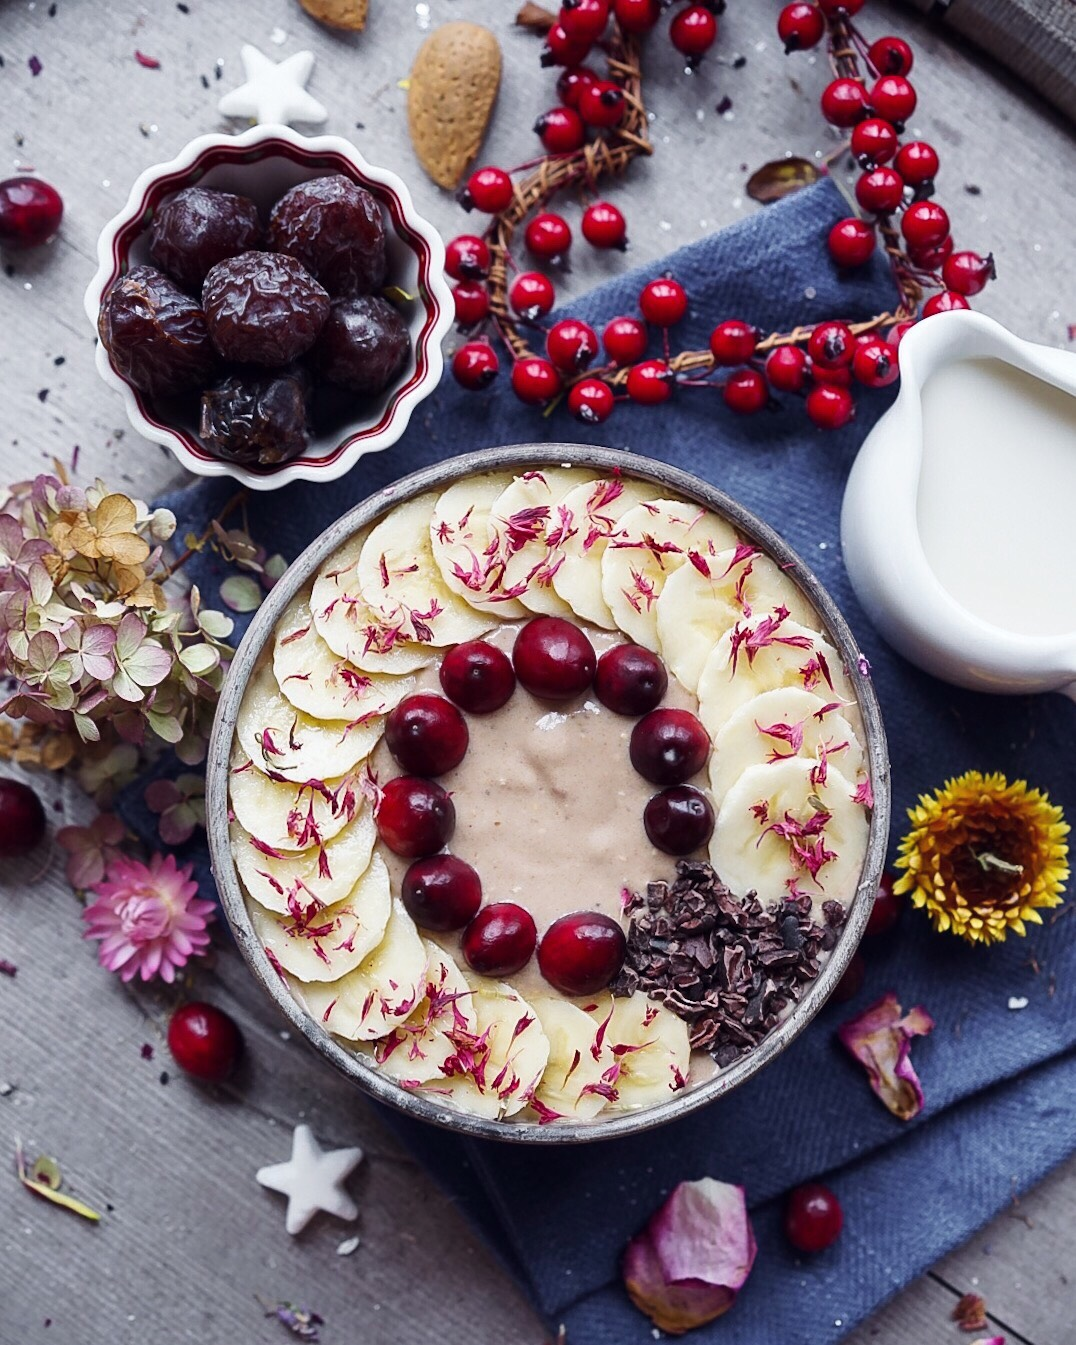 Salted Caramel Smoothie with Almonds, gluten-free and vegan. Toppings include banana slices, cranberries and dried flowers.